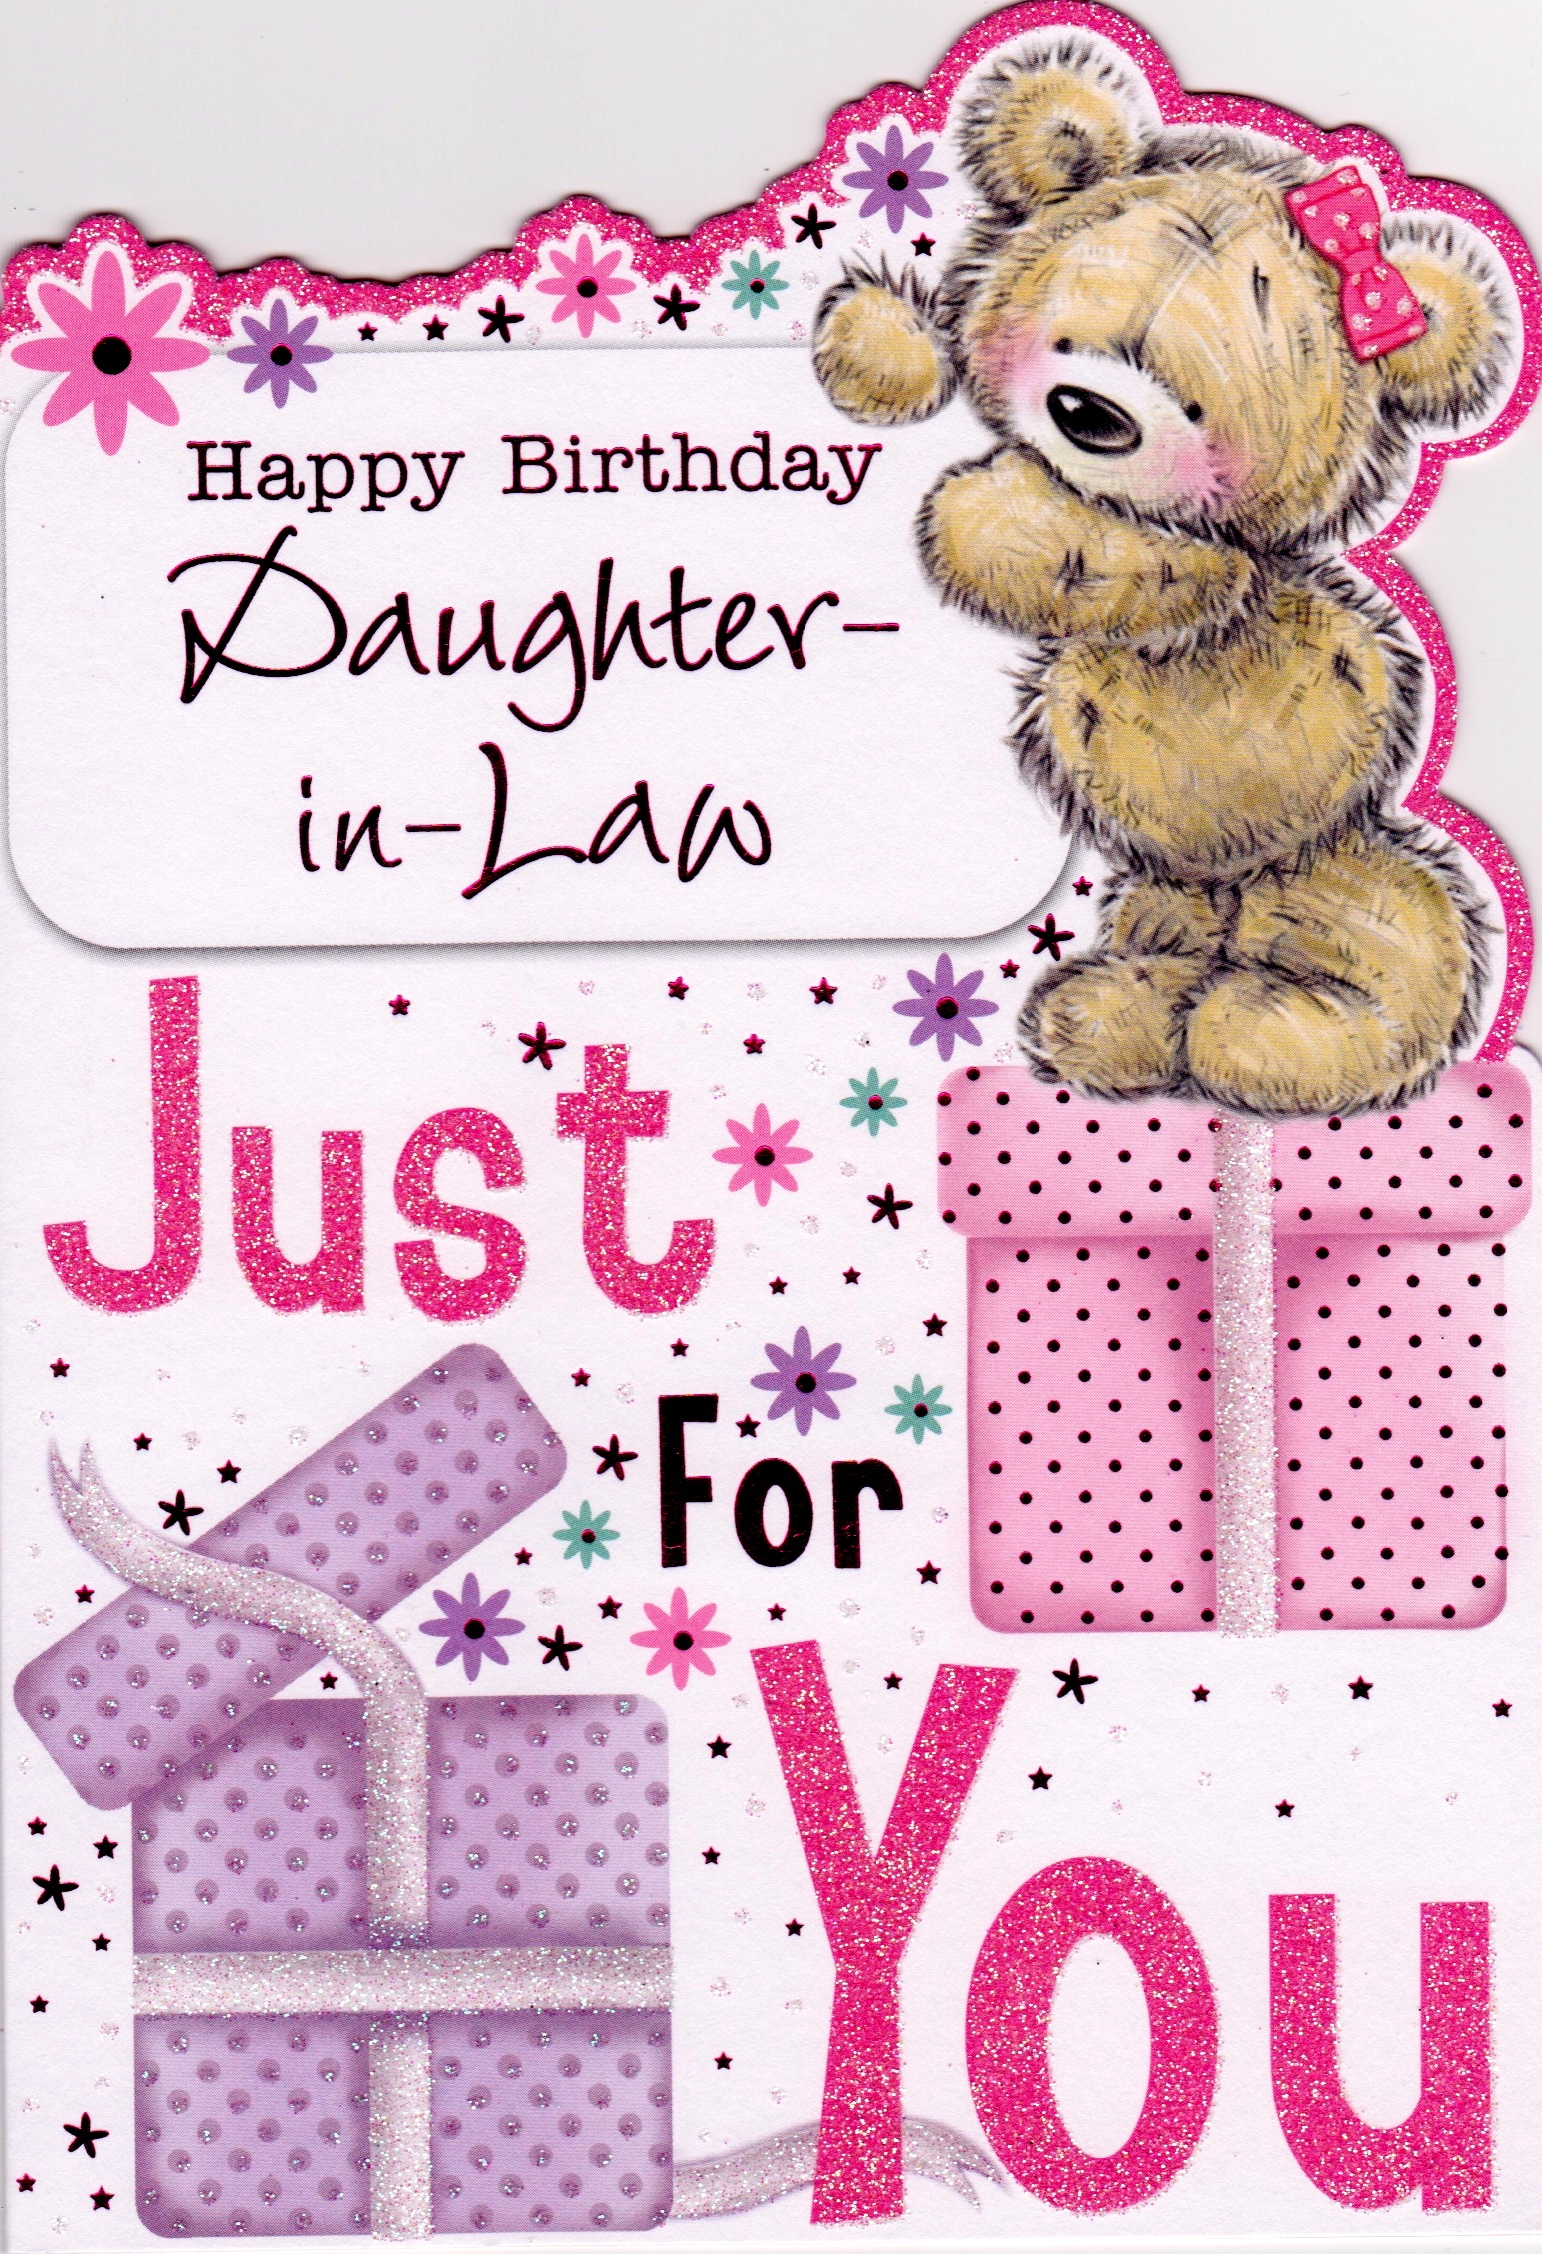 Free My Daughter Cliparts, Download Free Clip Art, Free Clip.